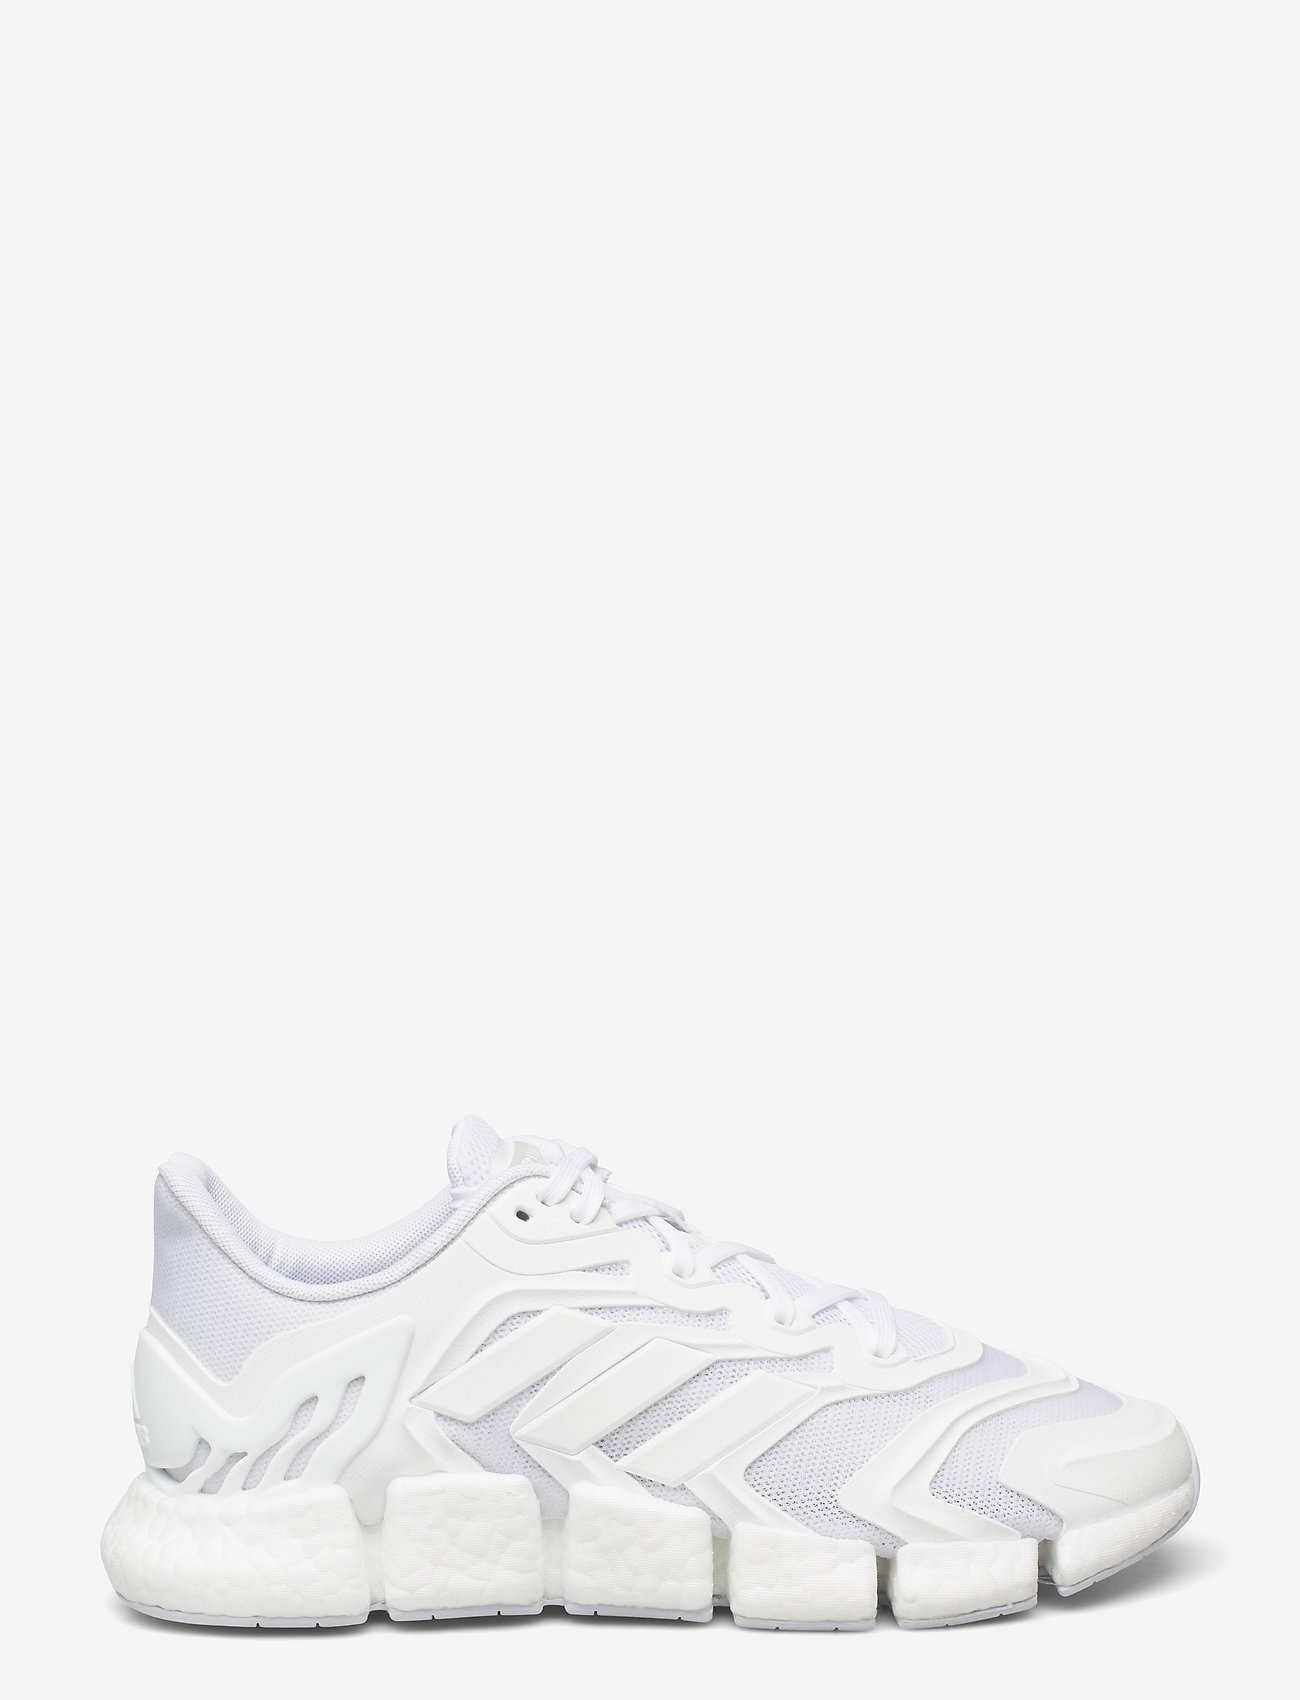 adidas Performance - Climacool Vento - running shoes - ftwwht/ftwwht/ftwwht - 1